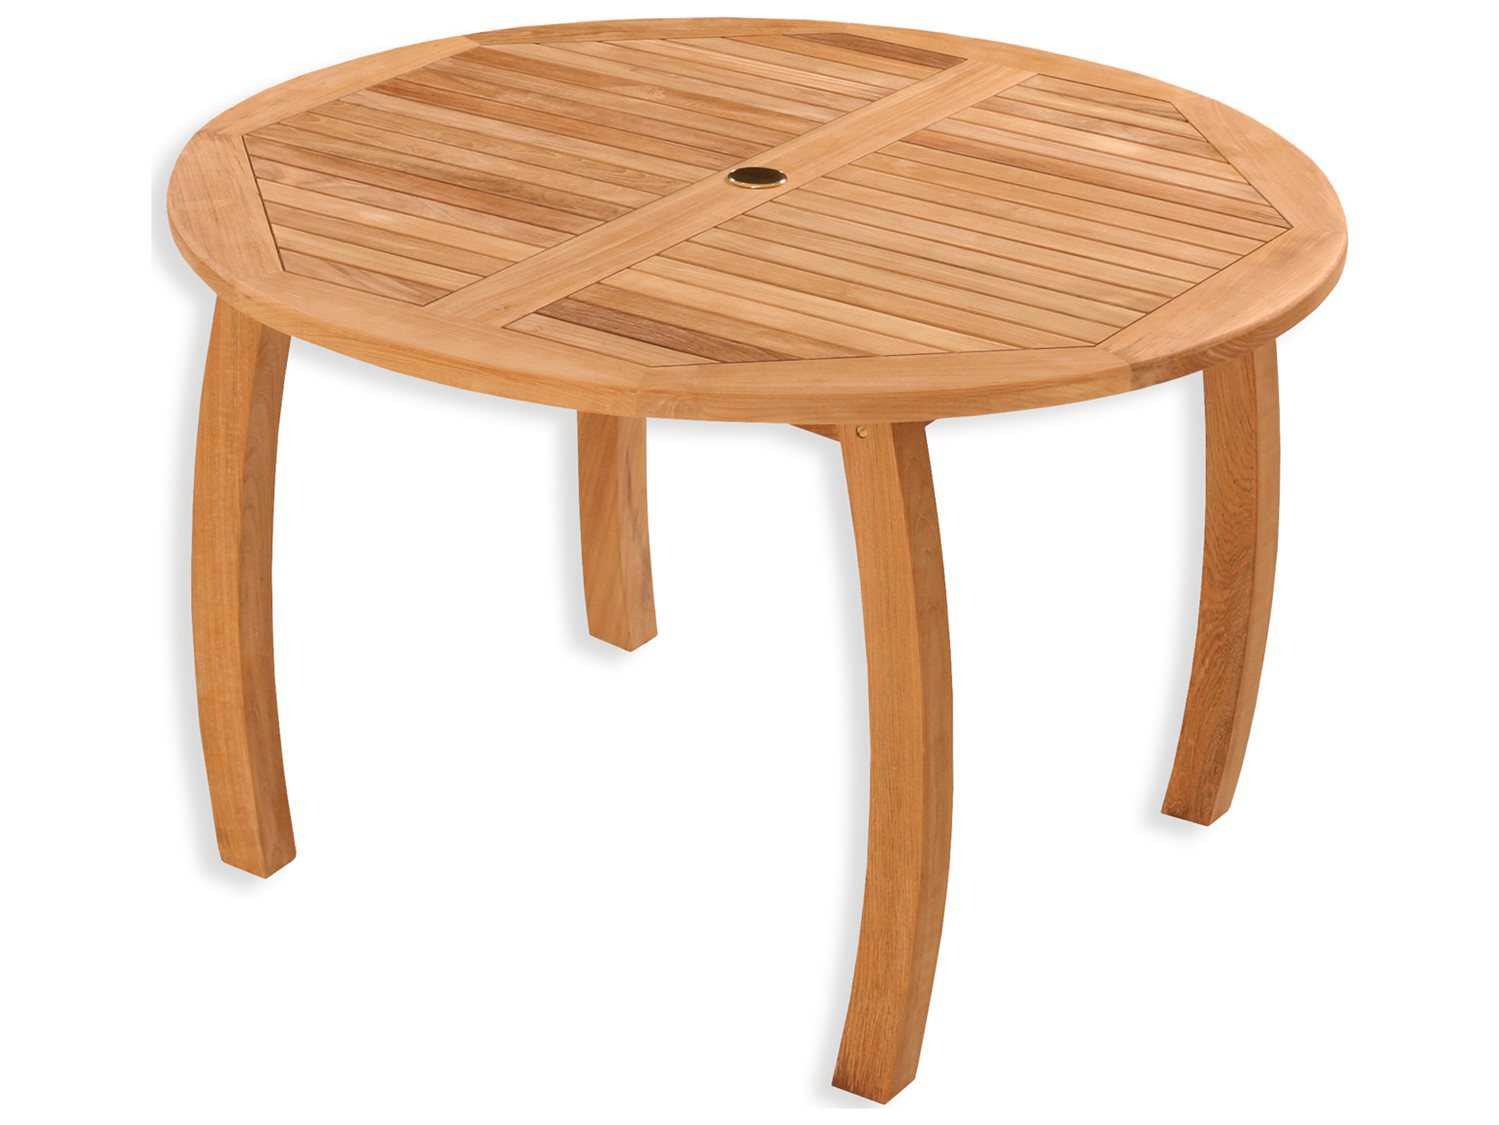 Tortuga outdoor jakarta teak 48 round dining table tk r dt for 44 inch round dining table with leaf